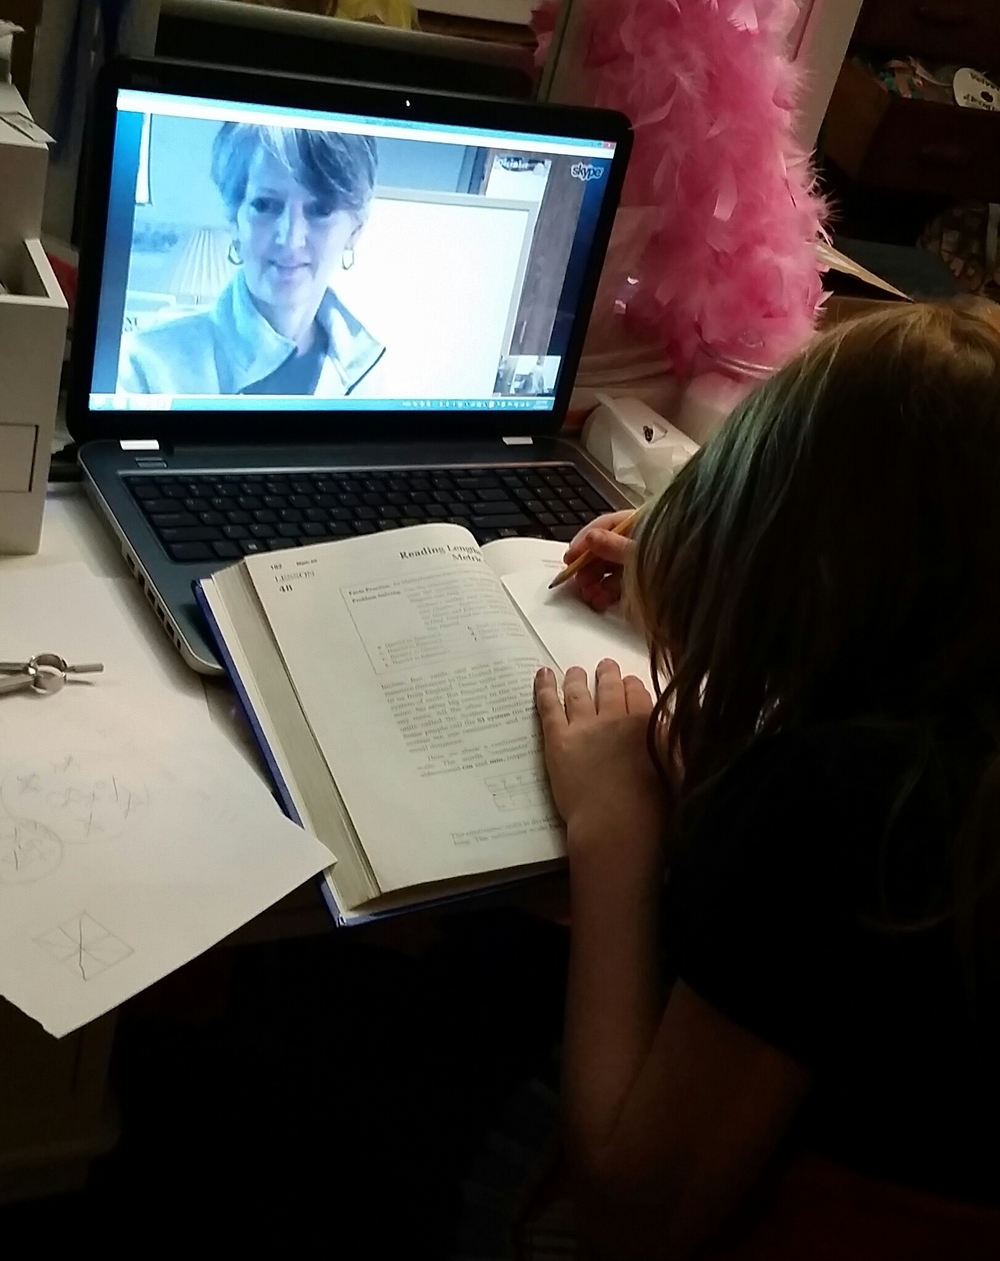 Tutoring Session via Skype